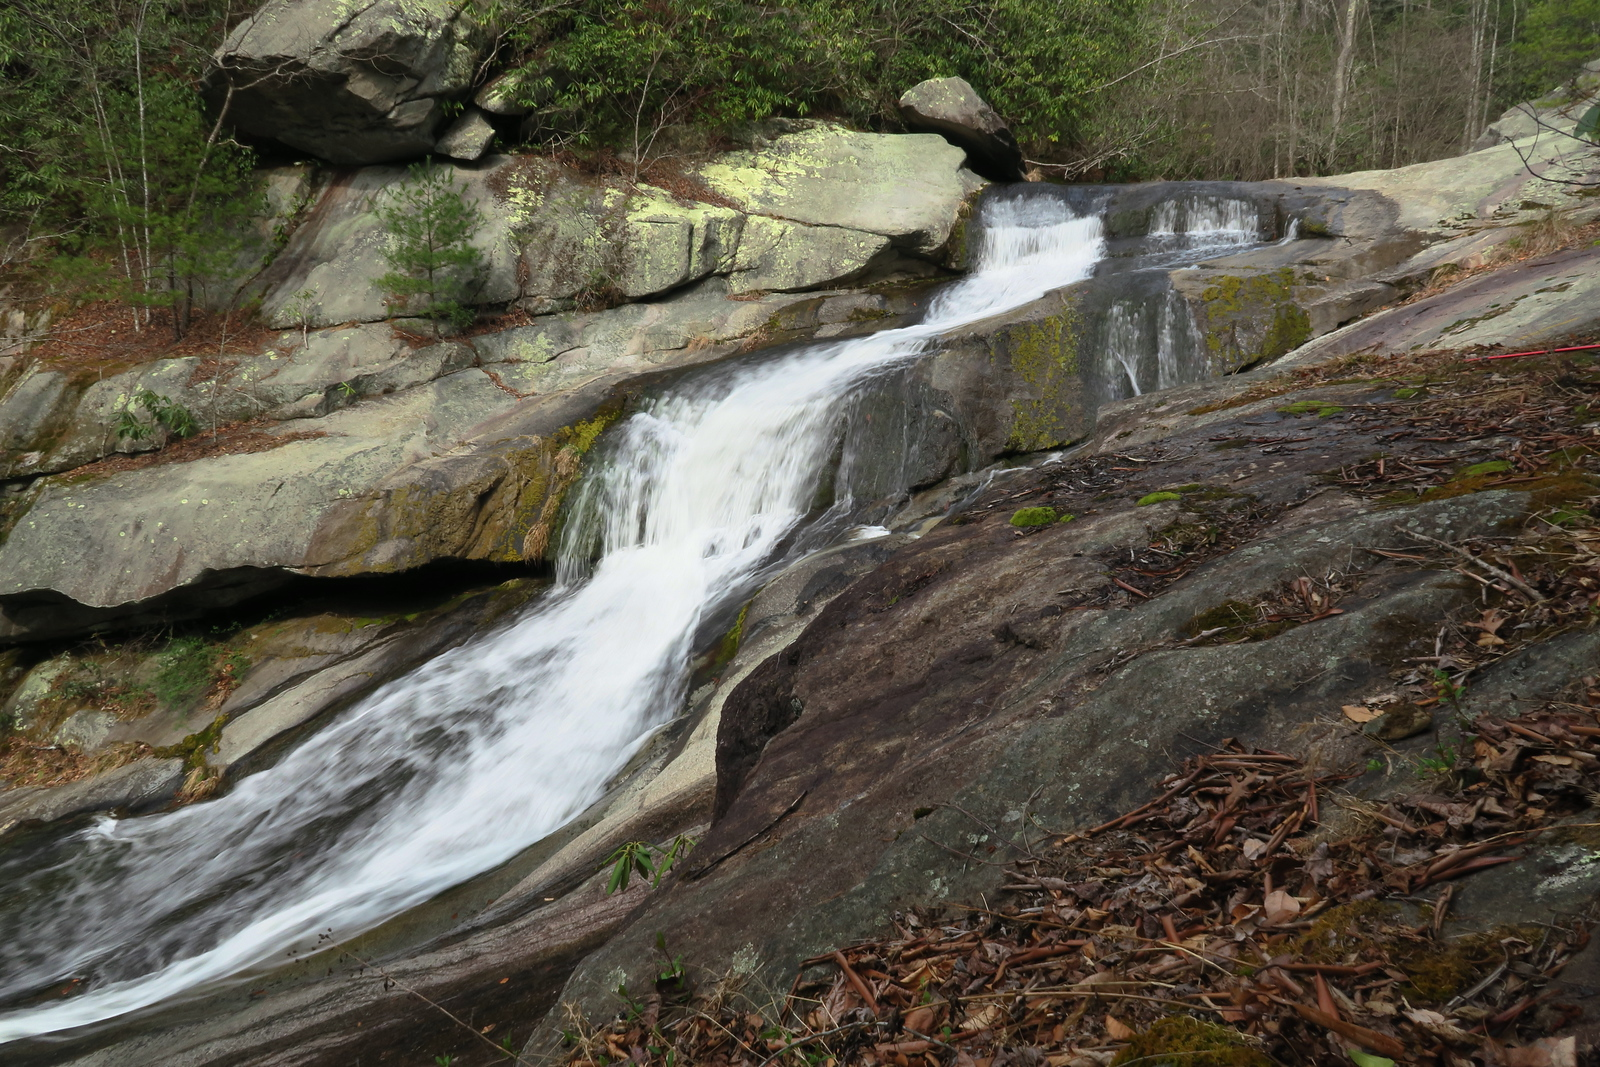 Middle Gragg Prong Falls